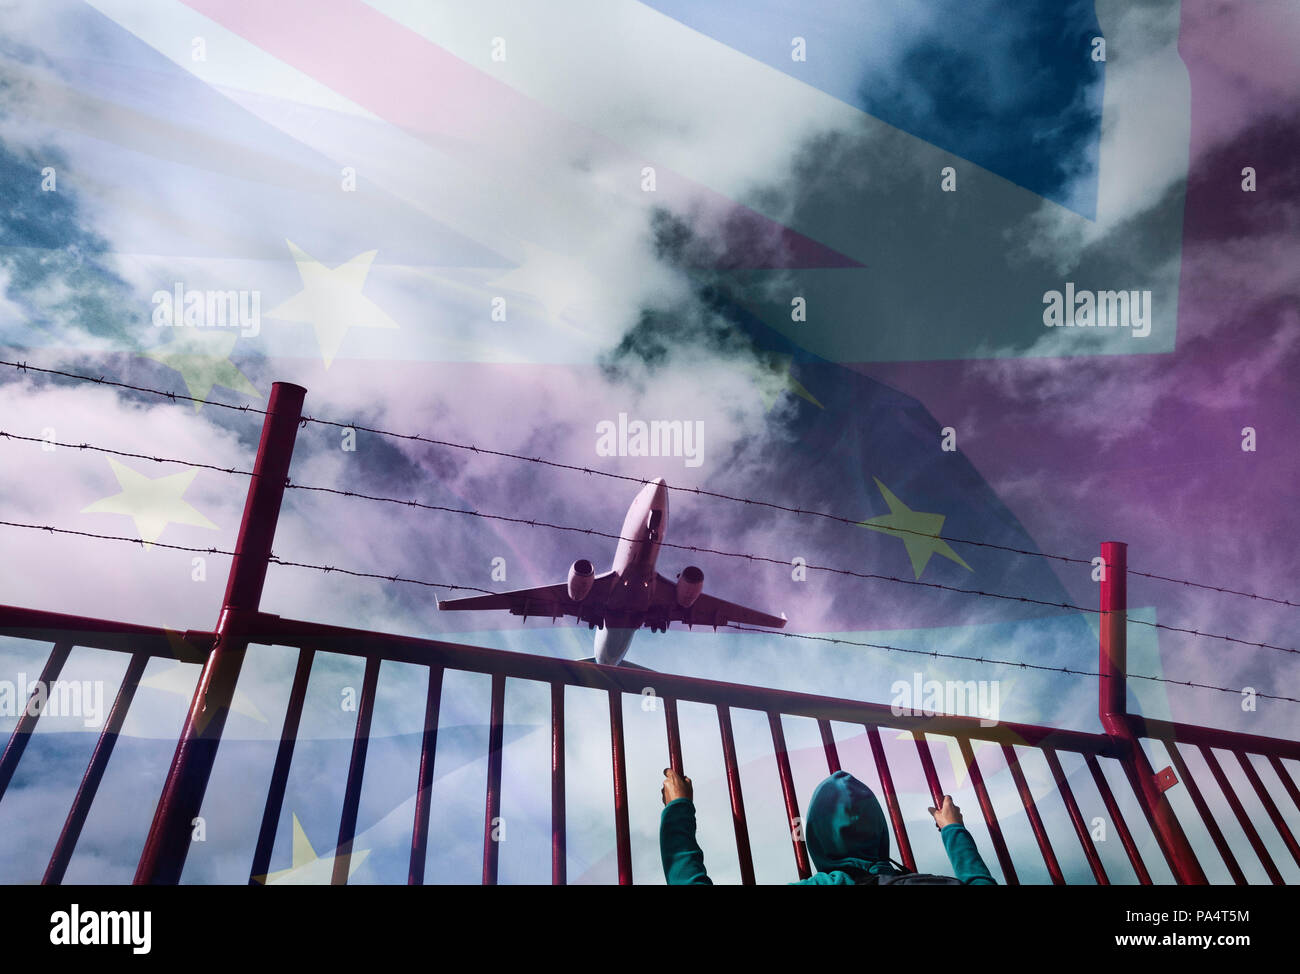 European Union and UK flag blended with sky above airport. Person behind fence. EU/UK/Irish border Brexit, immigration...concept. - Stock Image